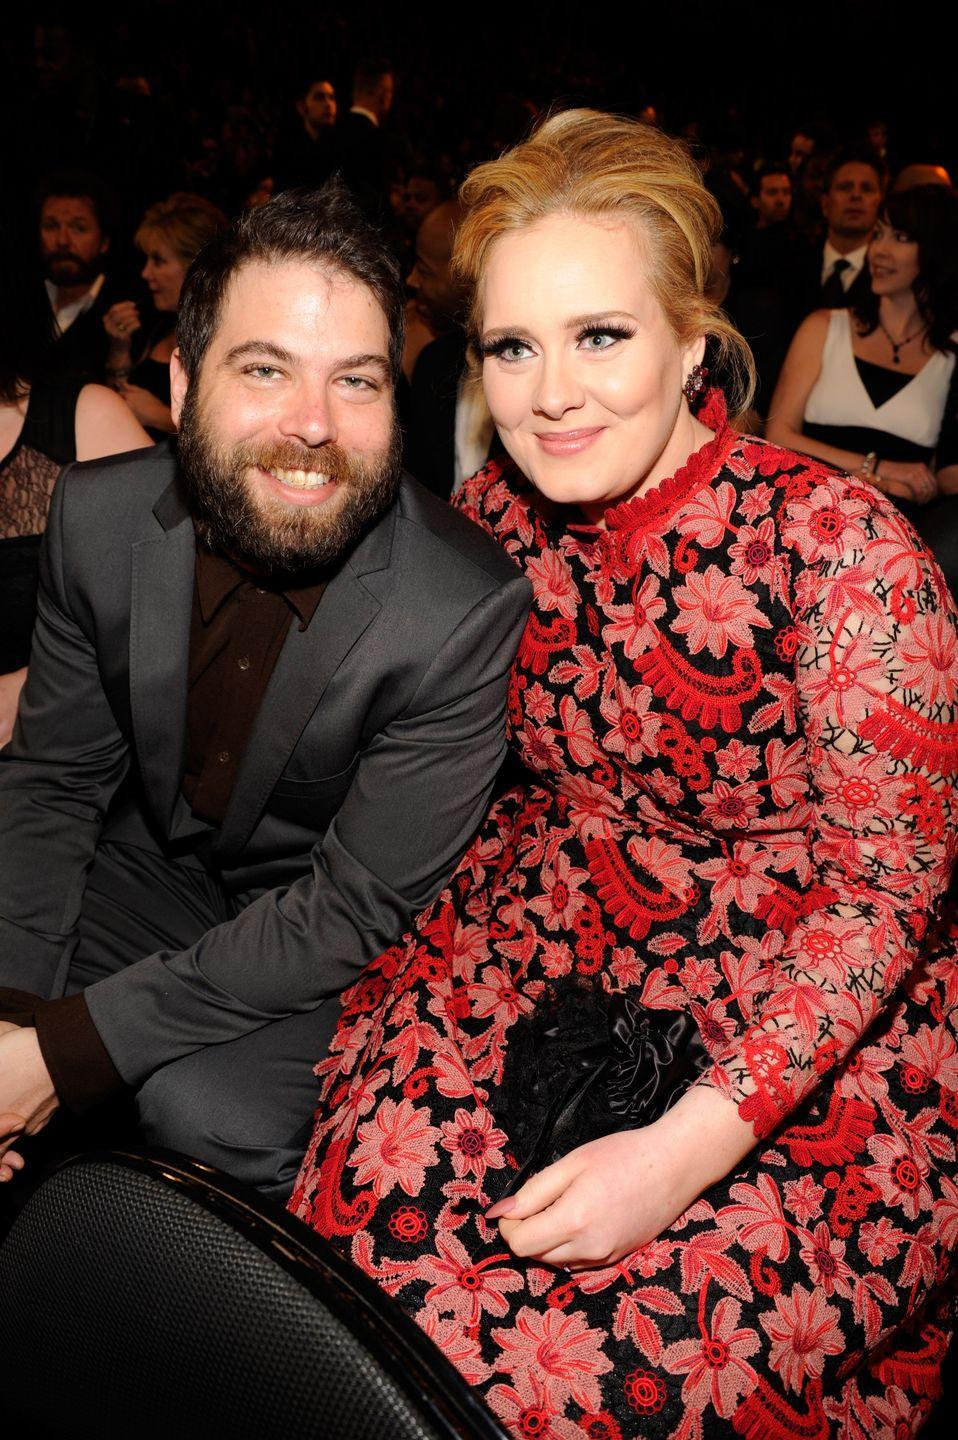 """<p><strong>Settlement: </strong><a href=""""https://people.com/music/adele-net-worth-180-million-divorce-simon-konecki/"""" rel=""""nofollow noopener"""" target=""""_blank"""" data-ylk=""""slk:Reportedly $90 million"""" class=""""link rapid-noclick-resp"""">Reportedly $90 million </a></p><p>The singer began dating Konecki in 2011, and they married in a secret ceremony five years later. The singer didn't <a href=""""https://www.vanityfair.com/style/2017/03/adele-confirms-marriage"""" rel=""""nofollow noopener"""" target=""""_blank"""" data-ylk=""""slk:confirm"""" class=""""link rapid-noclick-resp"""">confirm</a> their marriage until 2017 during an acceptance speech, """"Grammys, I appreciate it. The Academy, I love you. My manager, my husband, and my son—you're the only reason I do it."""" </p><p>They announced they were splitting in April 2019 and were in the final stages of completing their divorce nearly a year later. A Los Angeles court <a href=""""https://www.cosmopolitan.com/entertainment/celebs/a32051634/why-adele-ex-husband-simon-konecki-171-million-divorce-private-details/"""" rel=""""nofollow noopener"""" target=""""_blank"""" data-ylk=""""slk:granted Adele's request"""" class=""""link rapid-noclick-resp"""">granted Adele's request</a> to keep everything a top-secret, so the exact settlement number isn't public knowledge. </p><p><a href=""""https://www.thesun.co.uk/tvandshowbiz/11330321/adele-keep-key-details-140-million-divorce-secret/"""" rel=""""nofollow noopener"""" target=""""_blank"""" data-ylk=""""slk:The Sun"""" class=""""link rapid-noclick-resp""""><em><u>The Sun</u></em></a> reported the couple didn't sign a prenuptial agreement, so Konecki may have received up to half of Adele's fortune. According to <a href=""""https://people.com/music/adele-net-worth-180-million-divorce-simon-konecki/"""" rel=""""nofollow noopener"""" target=""""_blank"""" data-ylk=""""slk:People"""" class=""""link rapid-noclick-resp""""><em><u>People</u></em></a>, Adele is worth an estimated $182 million. </p>"""